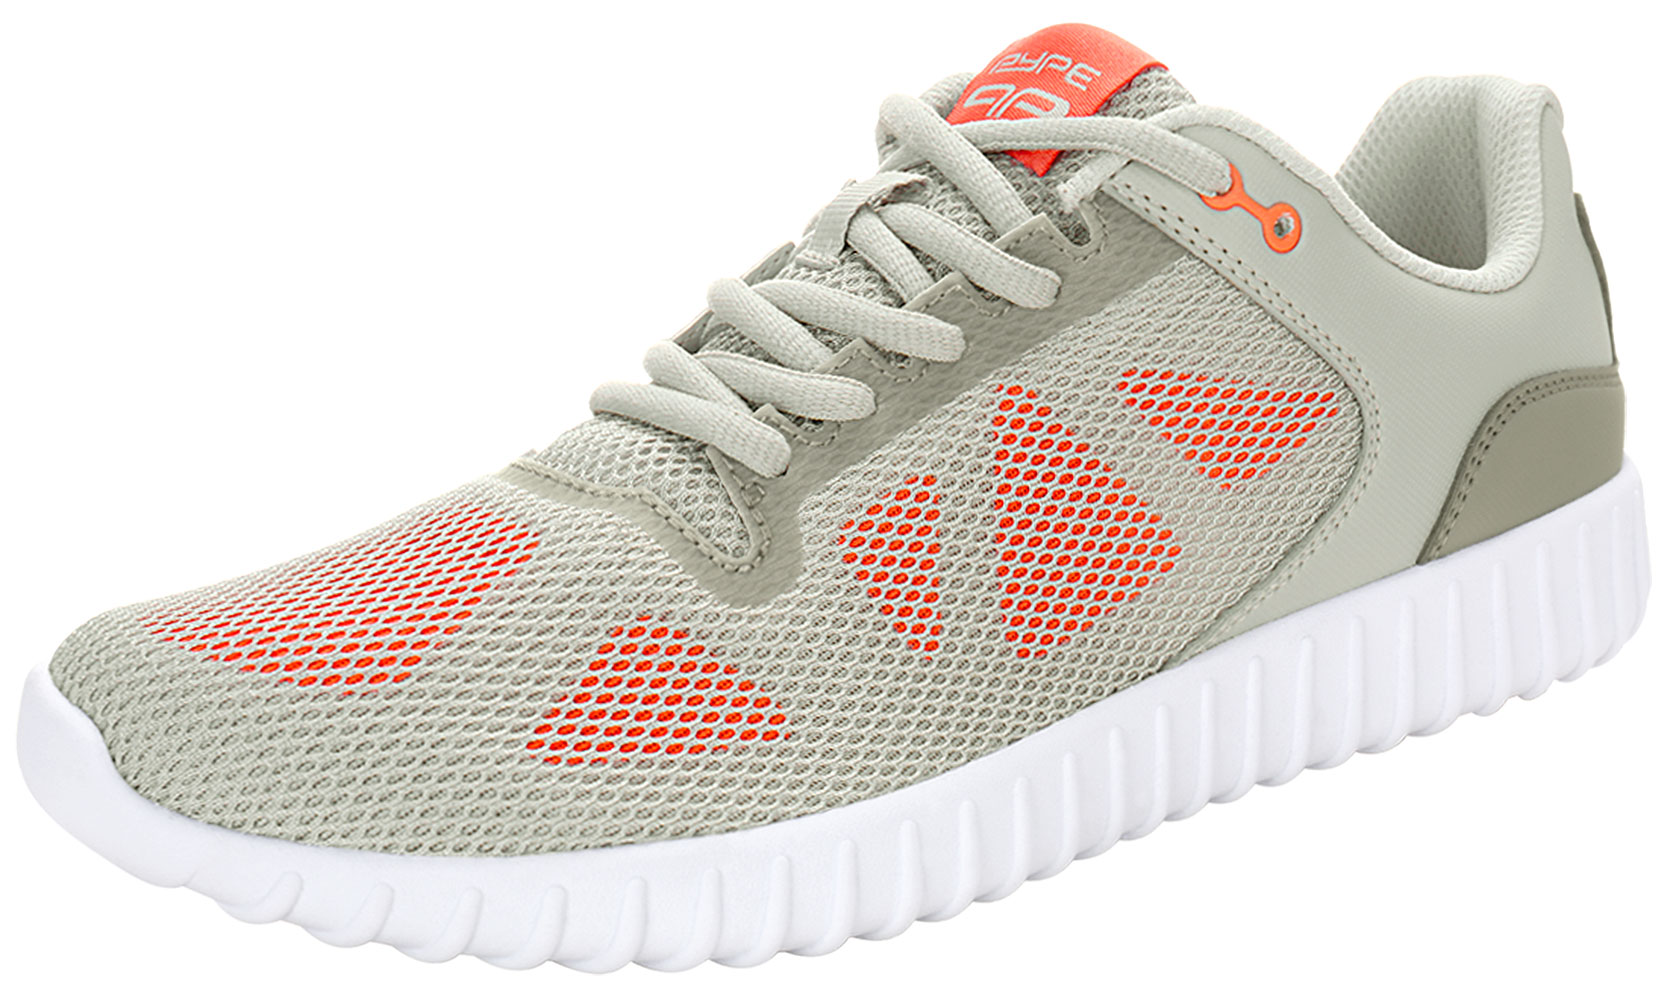 PYPE Women Geometric Prints Lace Up Mesh Training Shoes Gray US 8